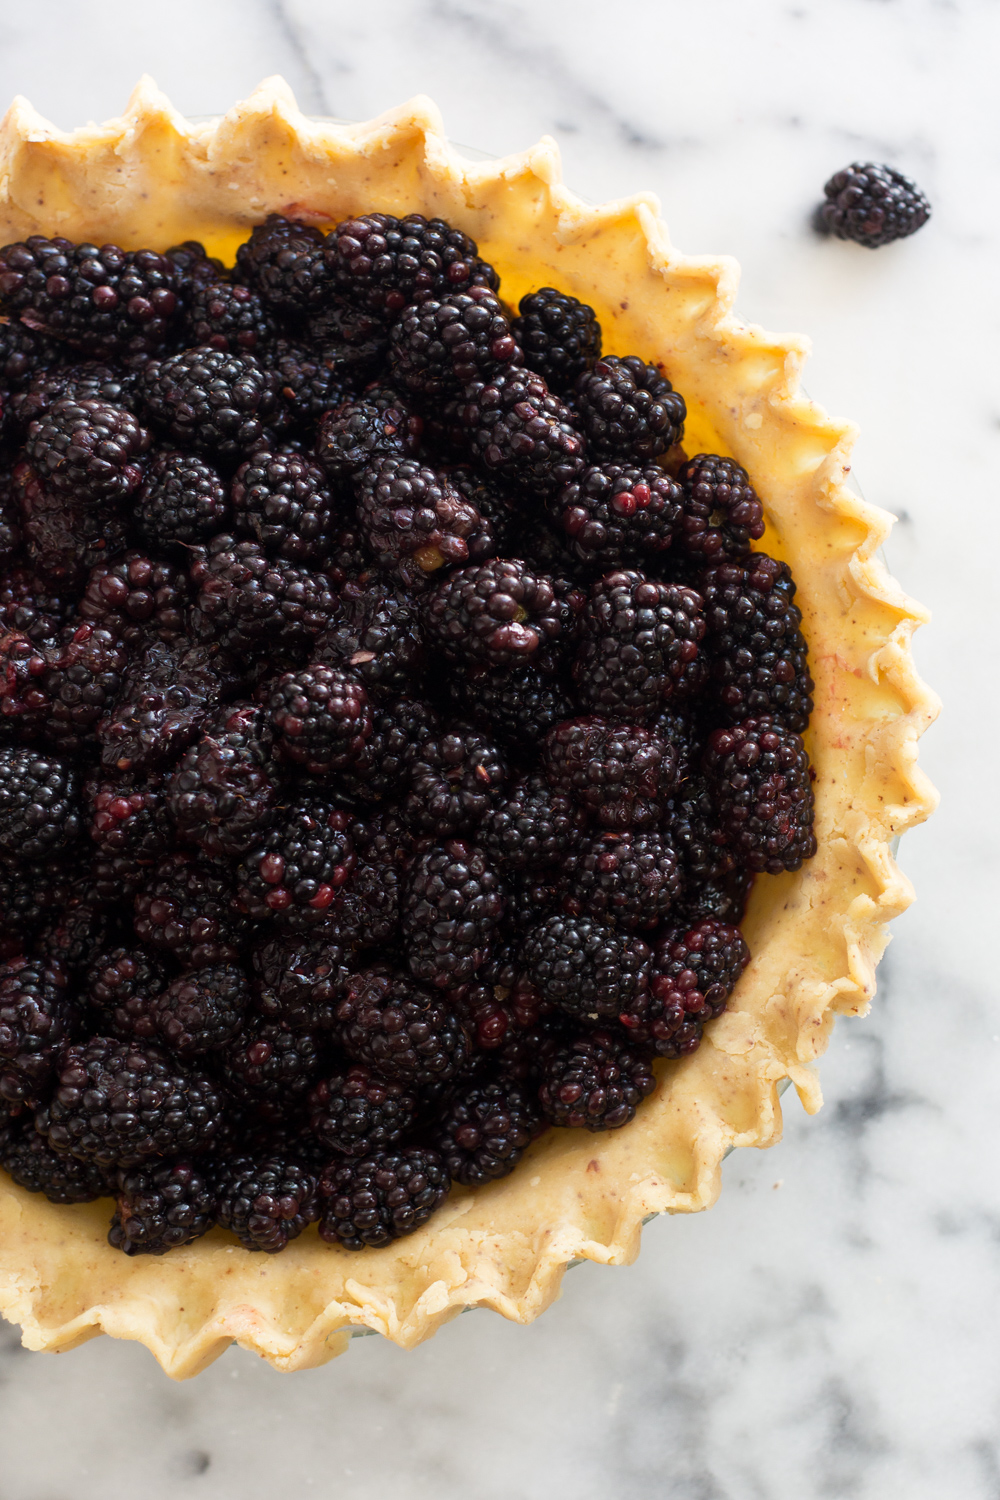 Brown Butter Blackberry Pie shell filled